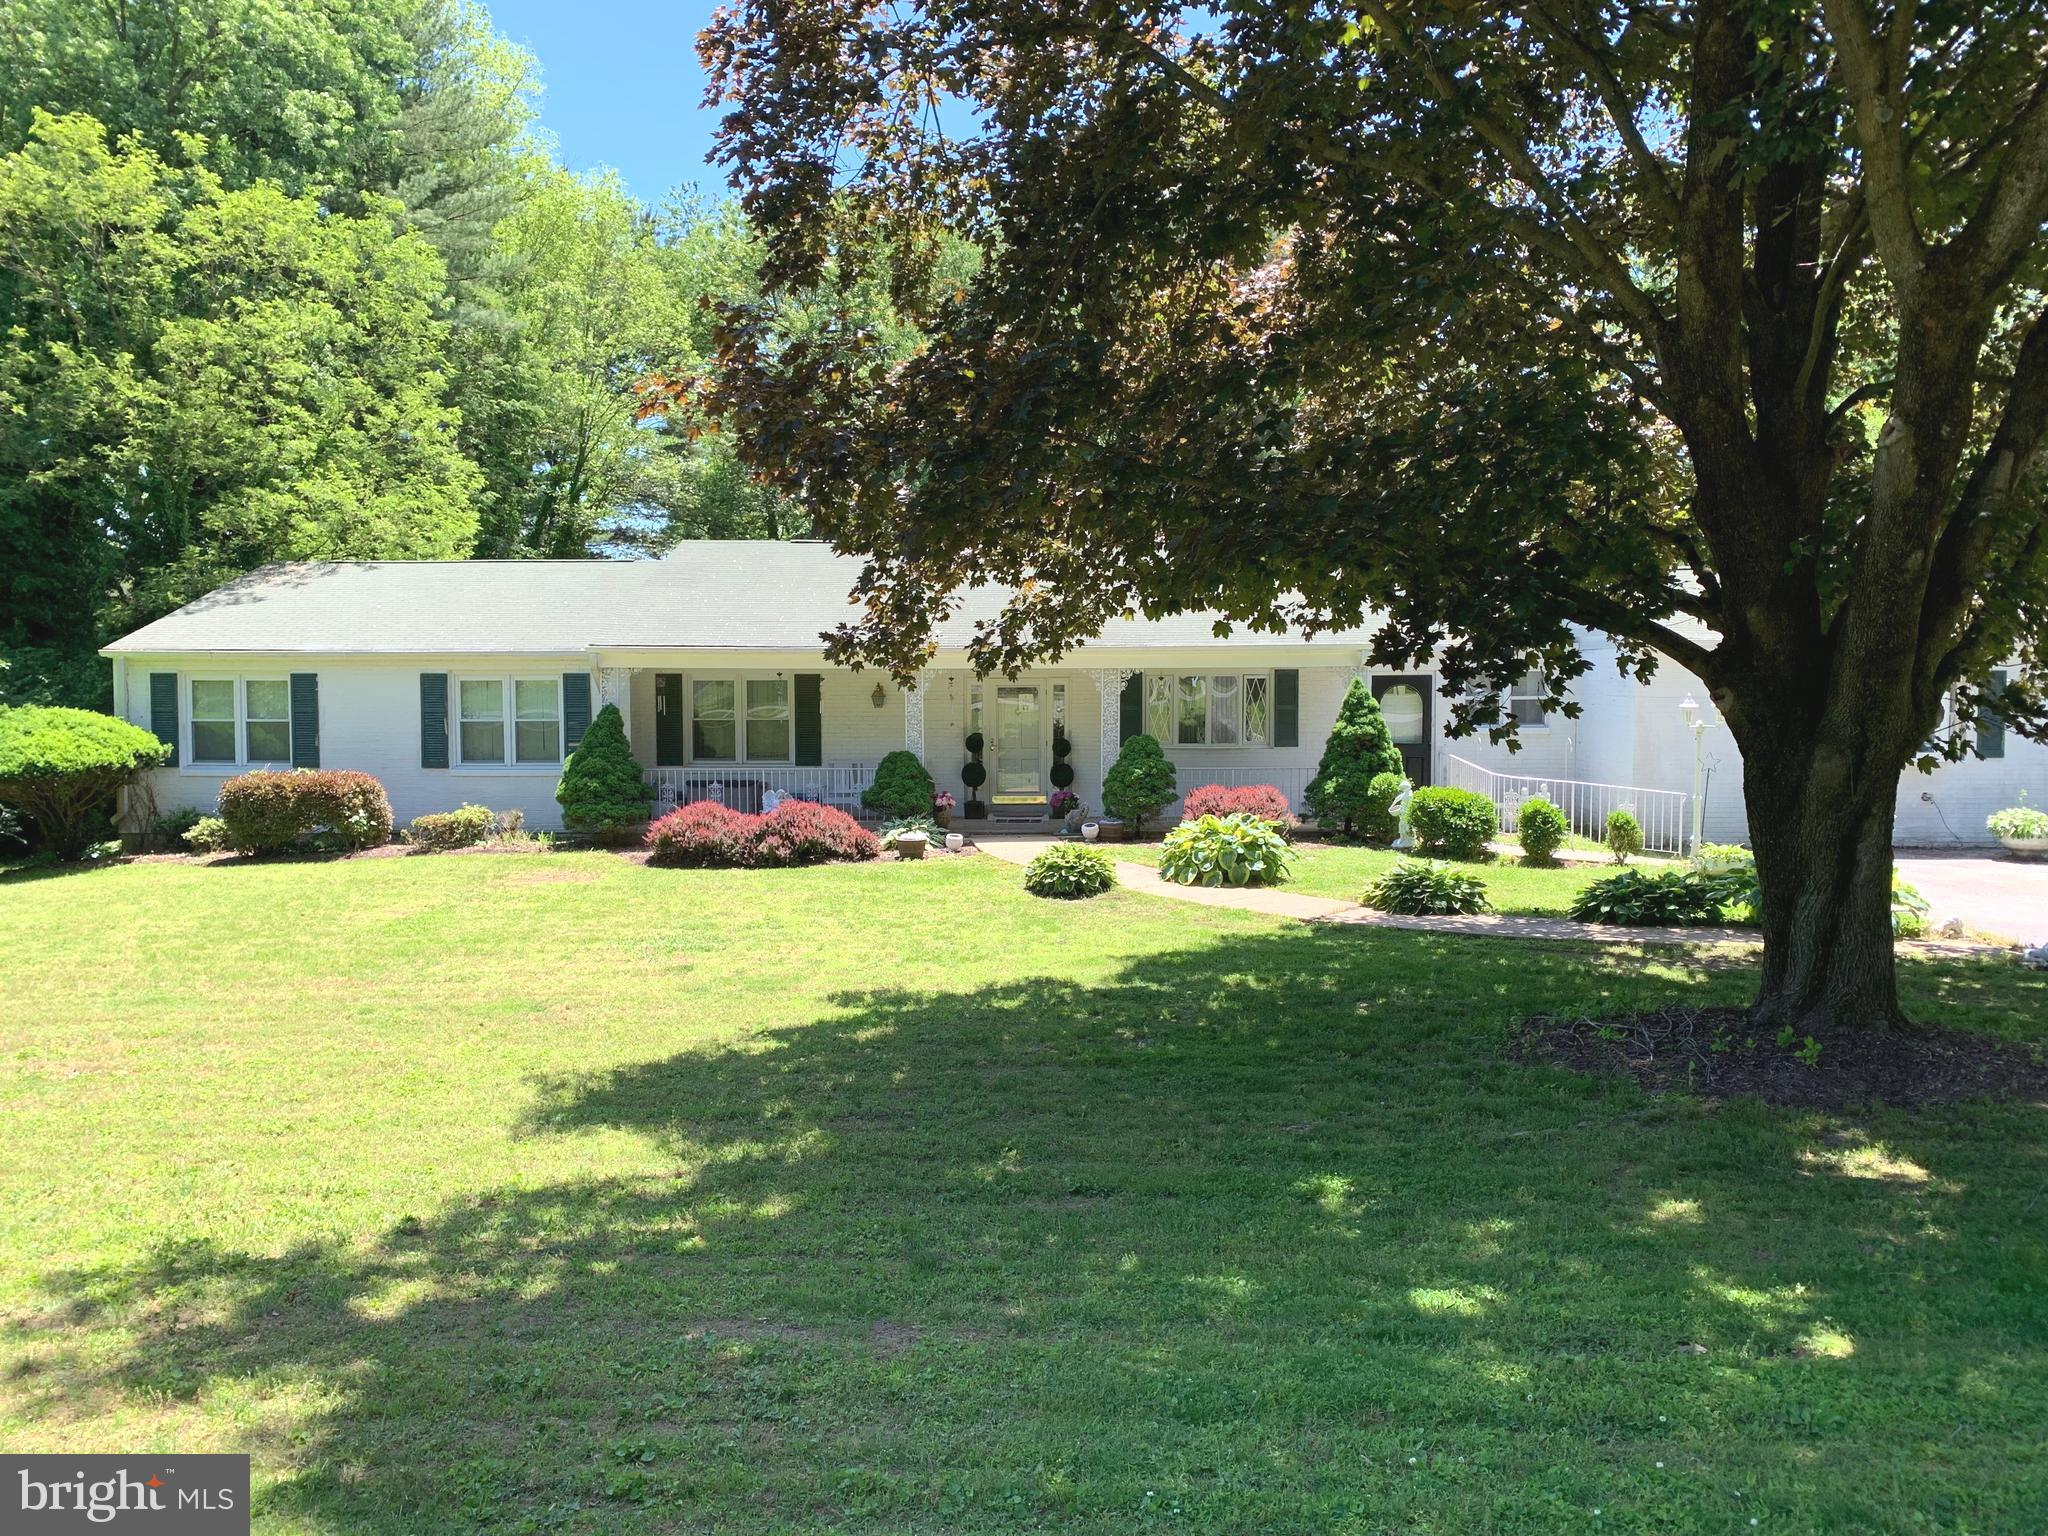 6 TODMORDEN DRIVE, ROSE VALLEY, PA 19086